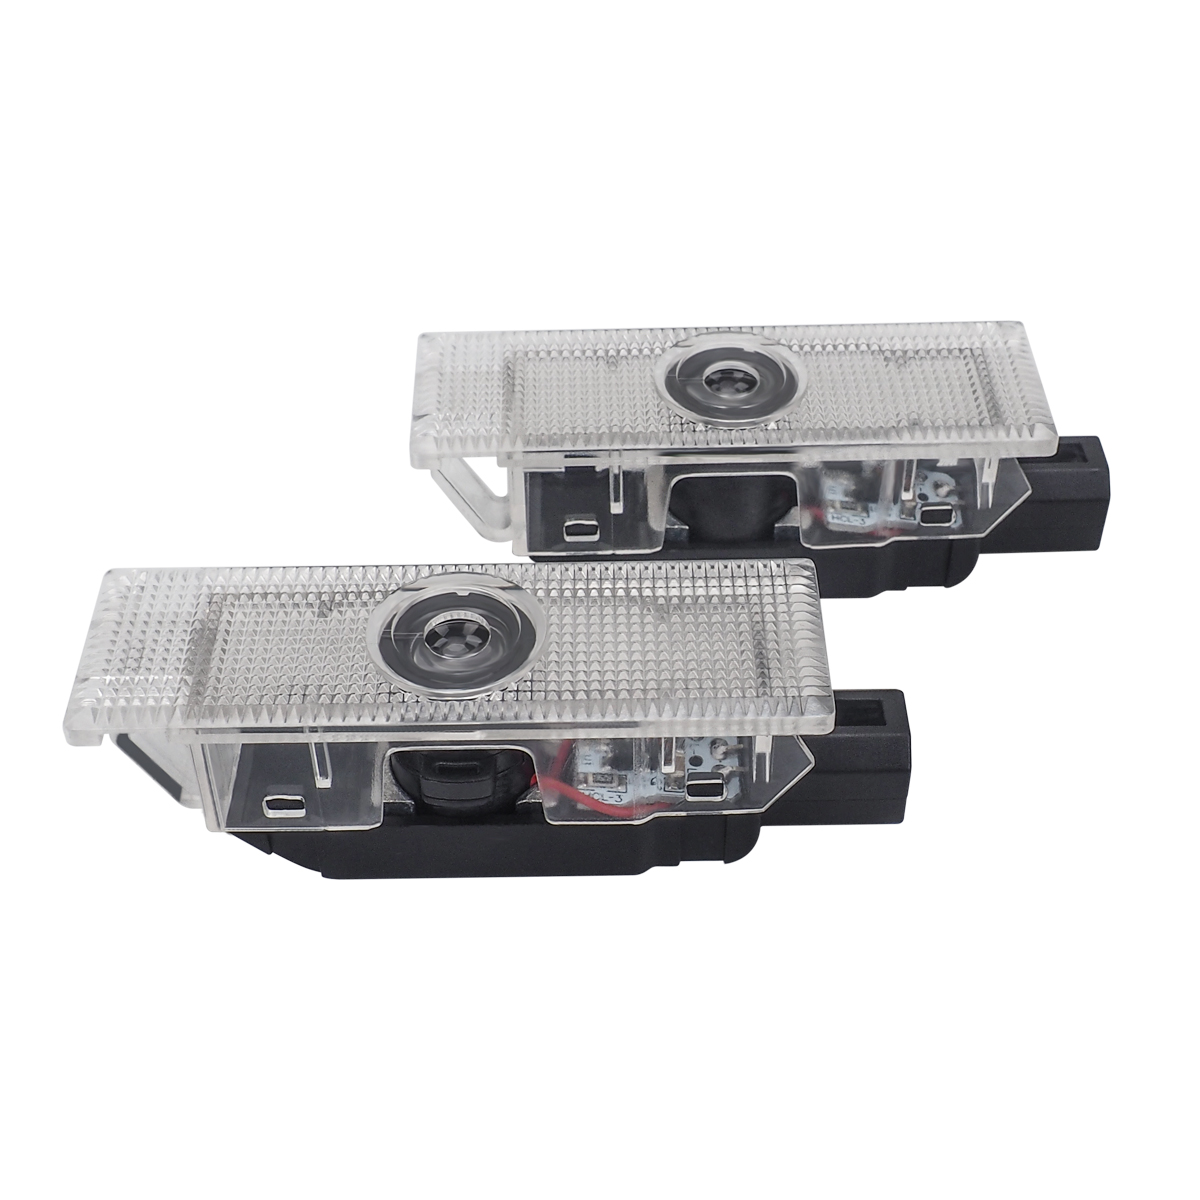 1 Pair Auto Car Door Light Welcome Light Accessories For Dodge Ram 1500 Joury Caliber Durango Caravan LED Car Ghost Shadow Light in Signal Lamp from Automobiles Motorcycles